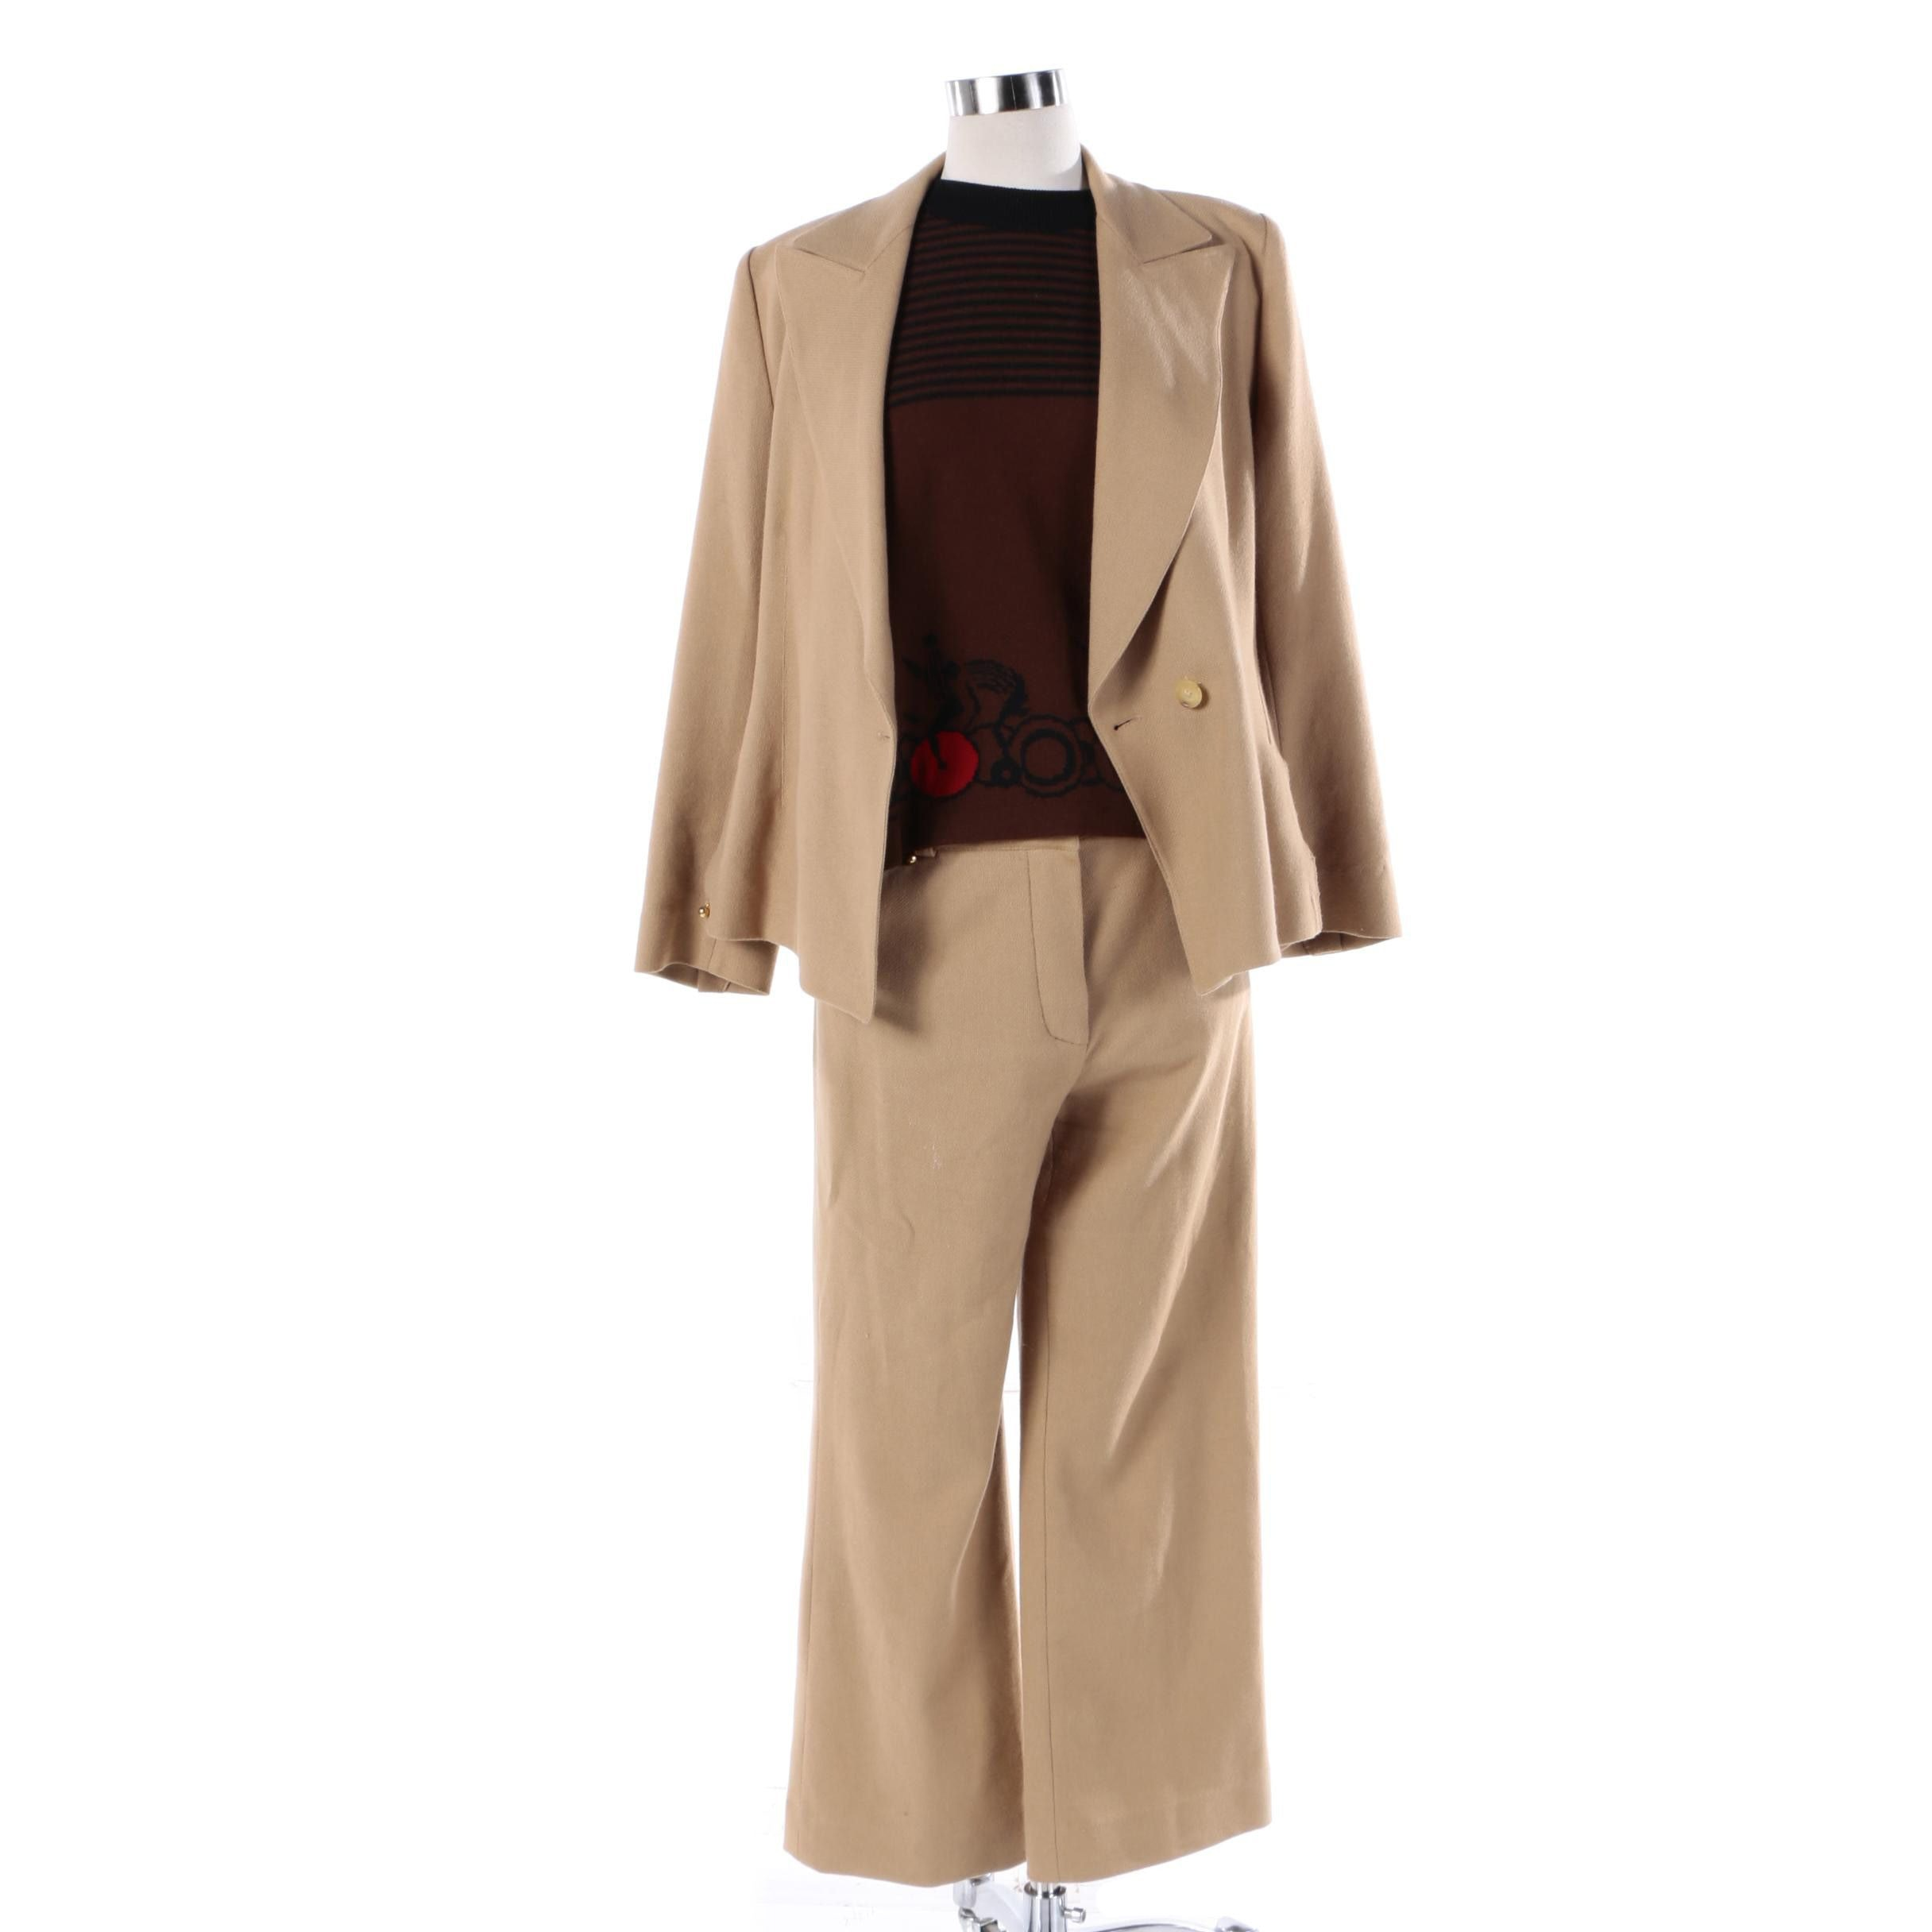 Sonia Rykiel Wool Pant Suit and Sweater